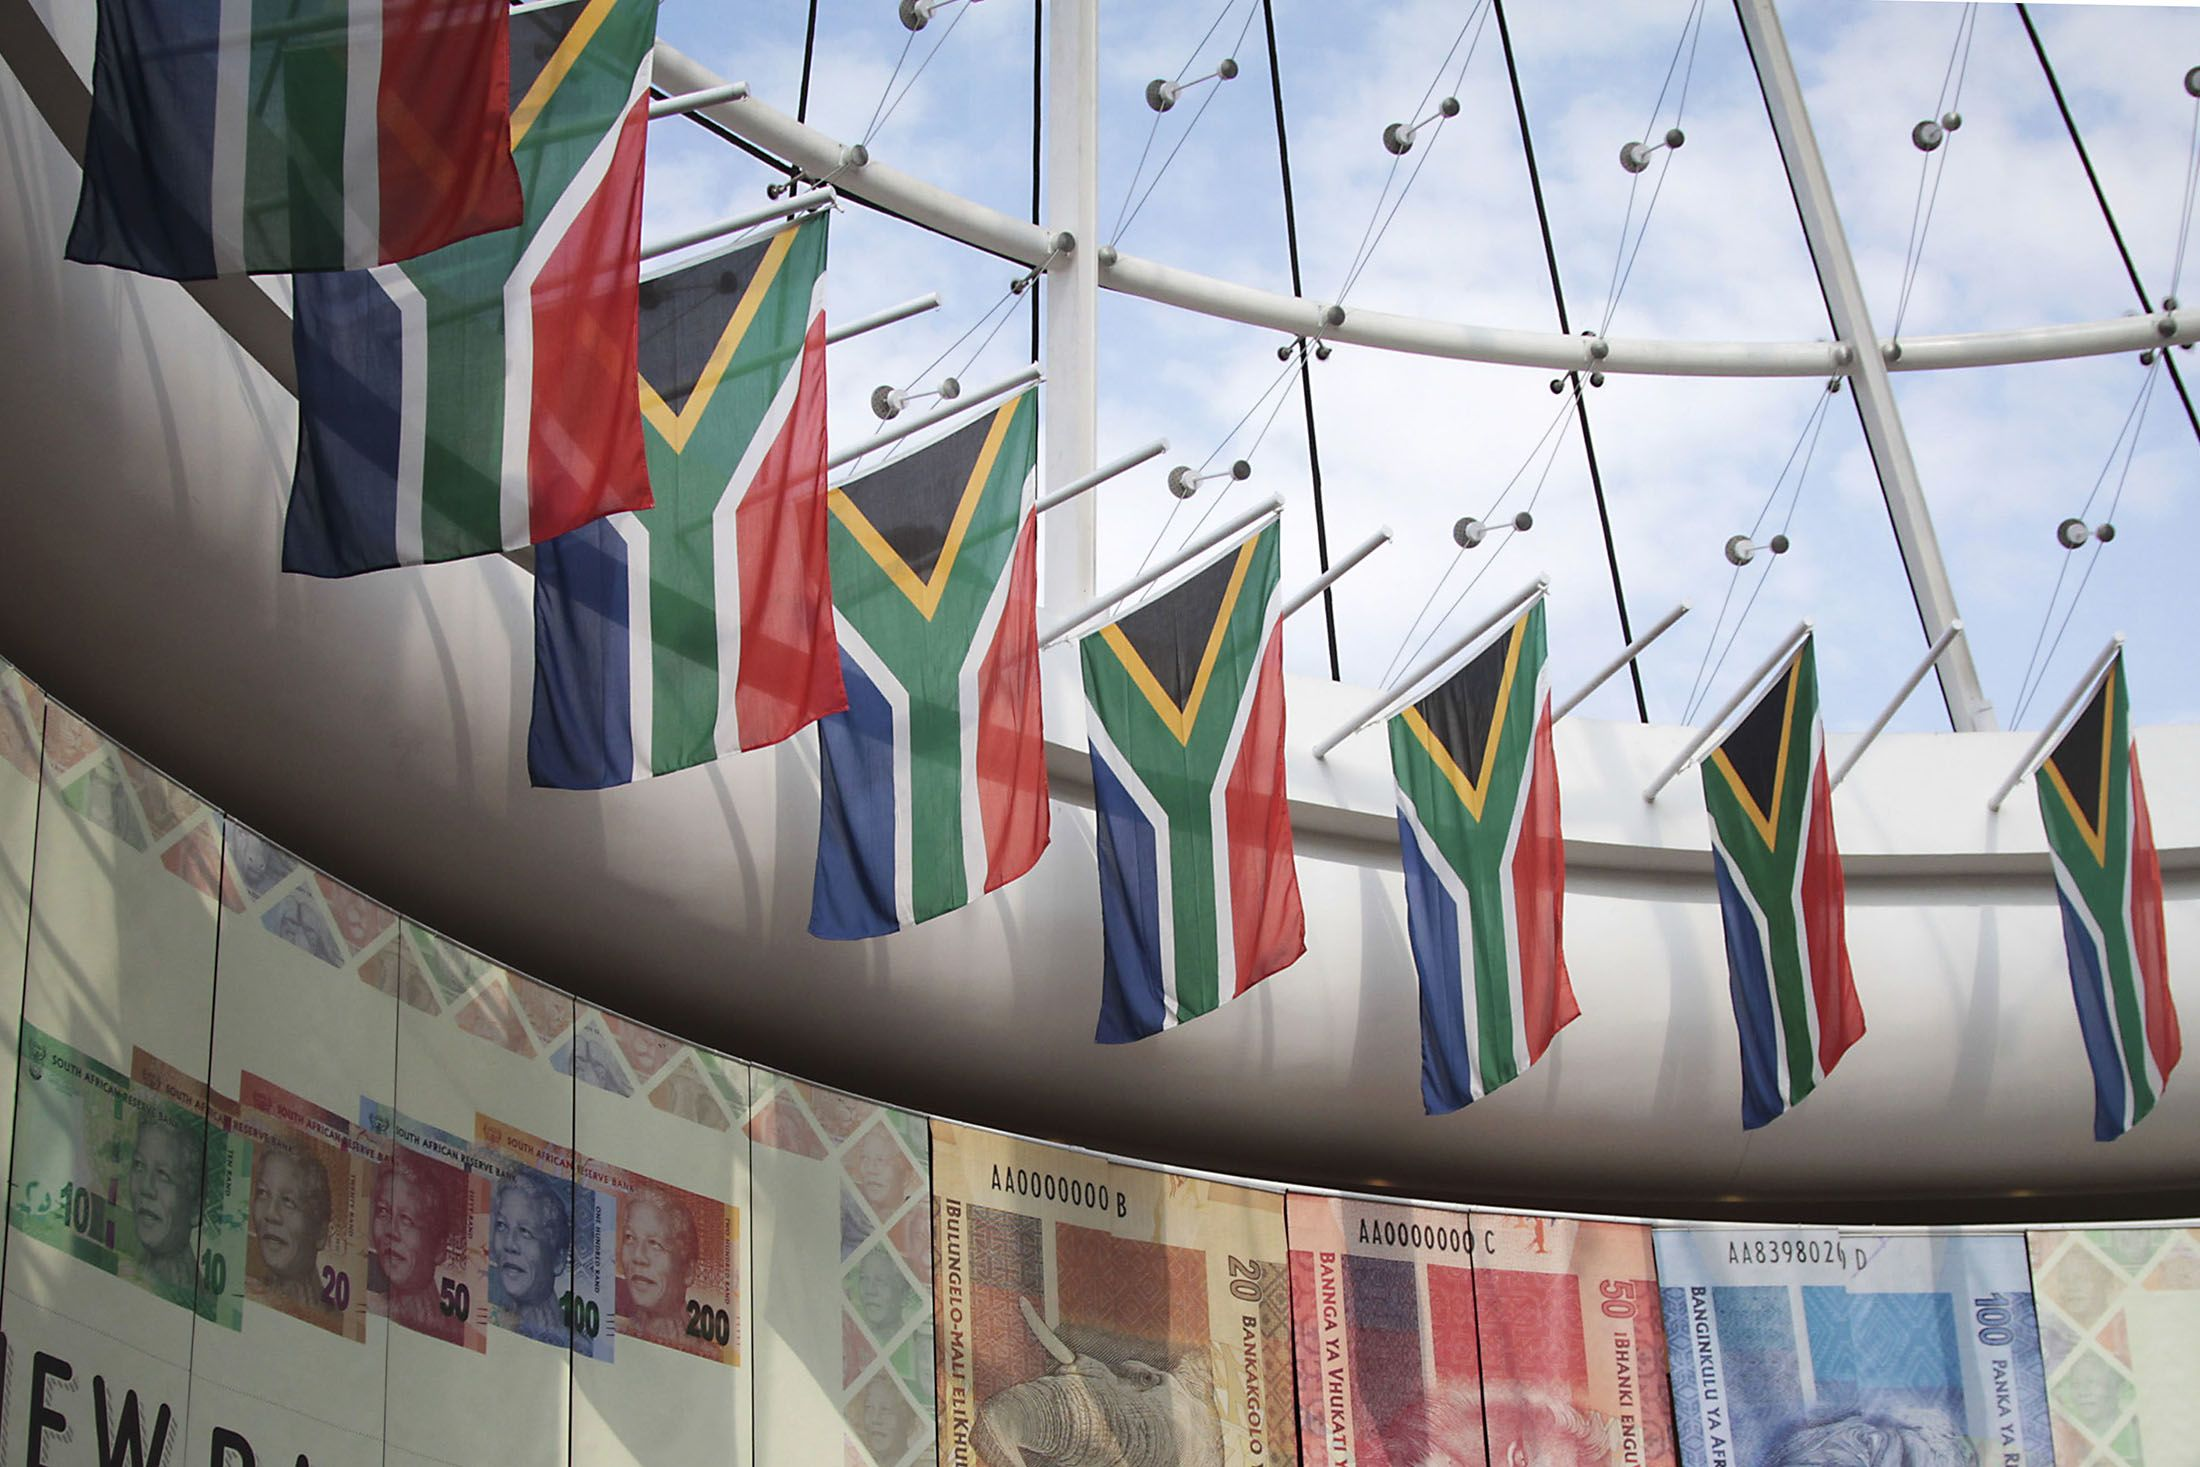 Politics to Weigh on South Africa's Central Bank, Moody's Says